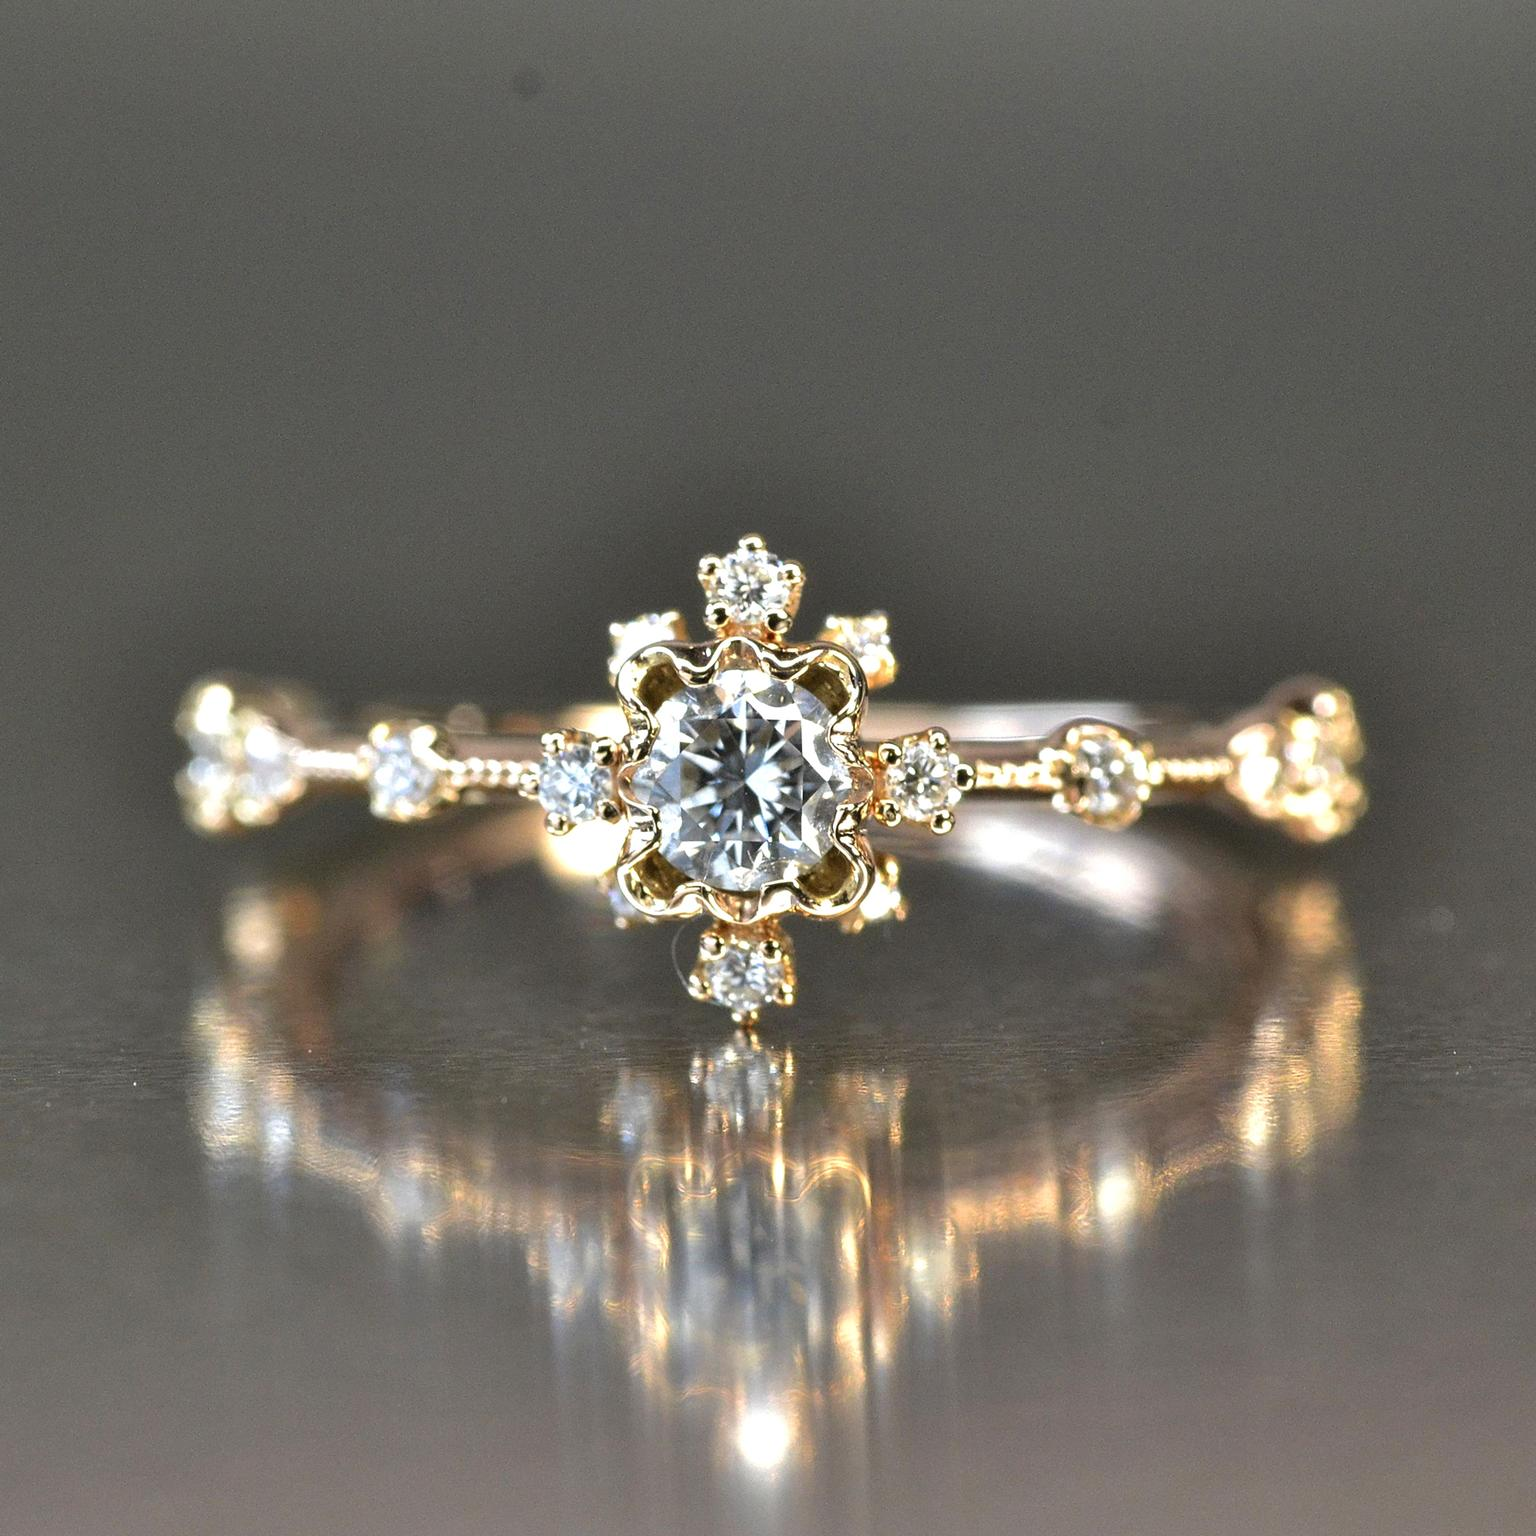 Kataoka diamond Snowflake Cluster engagement ring